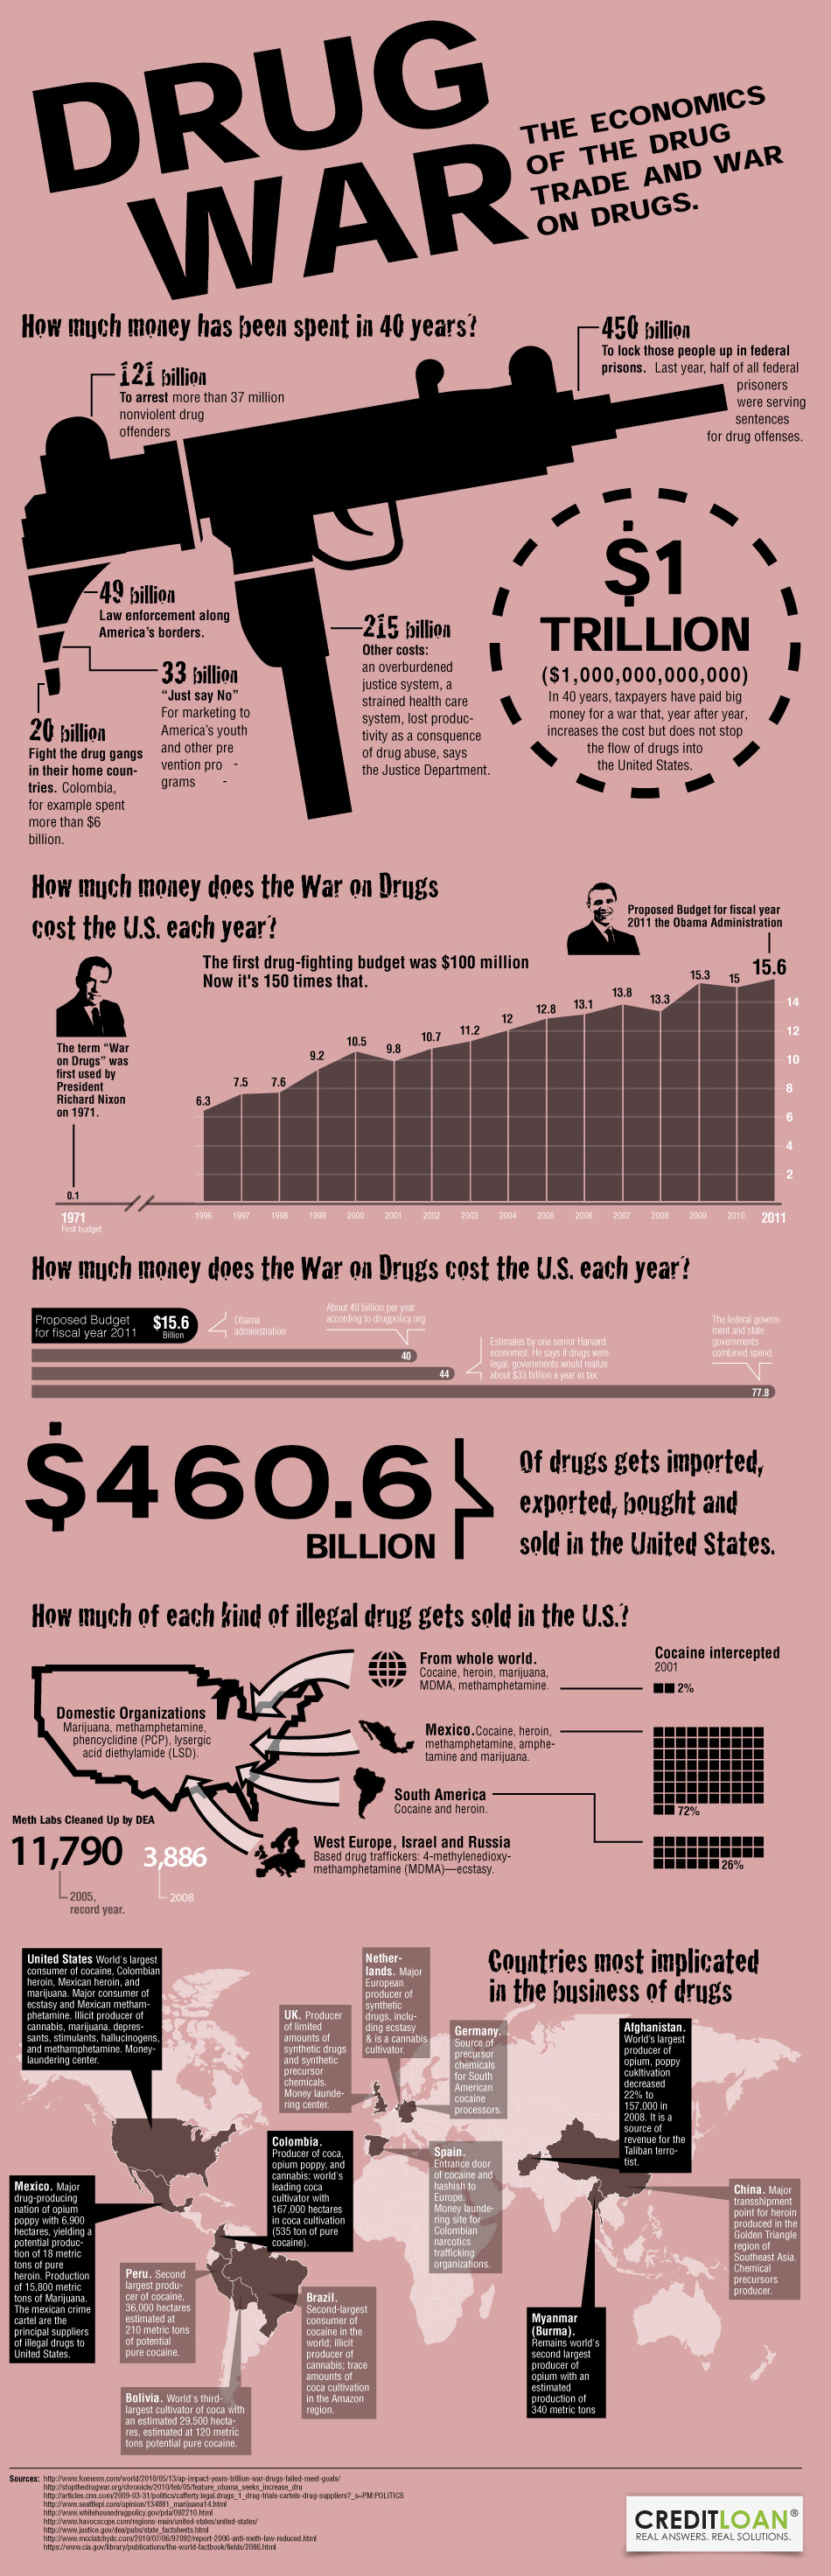 an overview of the war on drugs in the united states The united states will soon surpass a mile marker in the war on drugs—nearly a half-million drug prisoners are now locked up in local, state and federal jails, according to peter reuter.